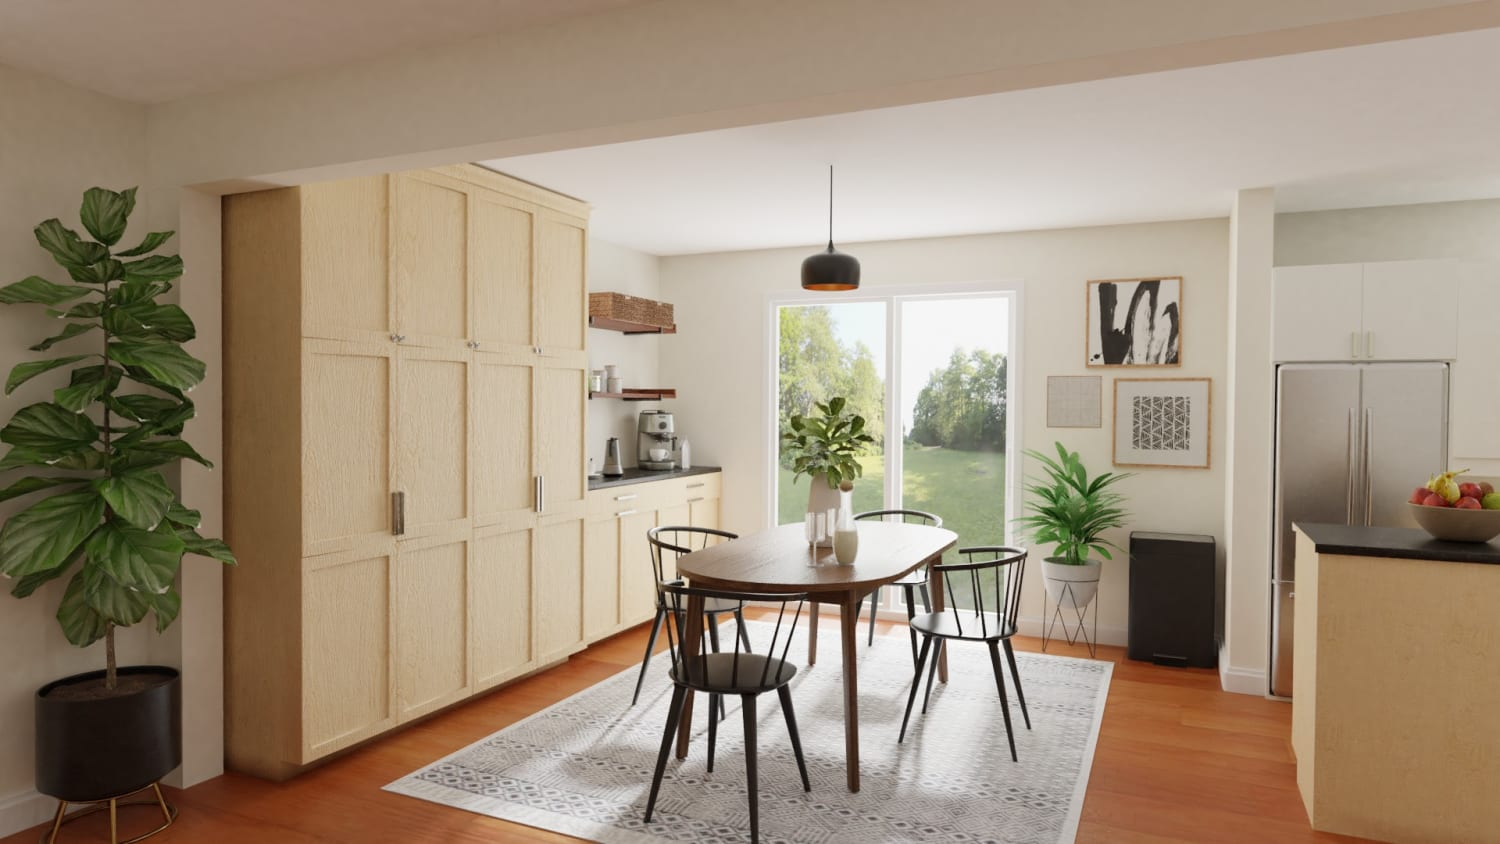 Spacejoy review of Dining Room Designed For Amanda